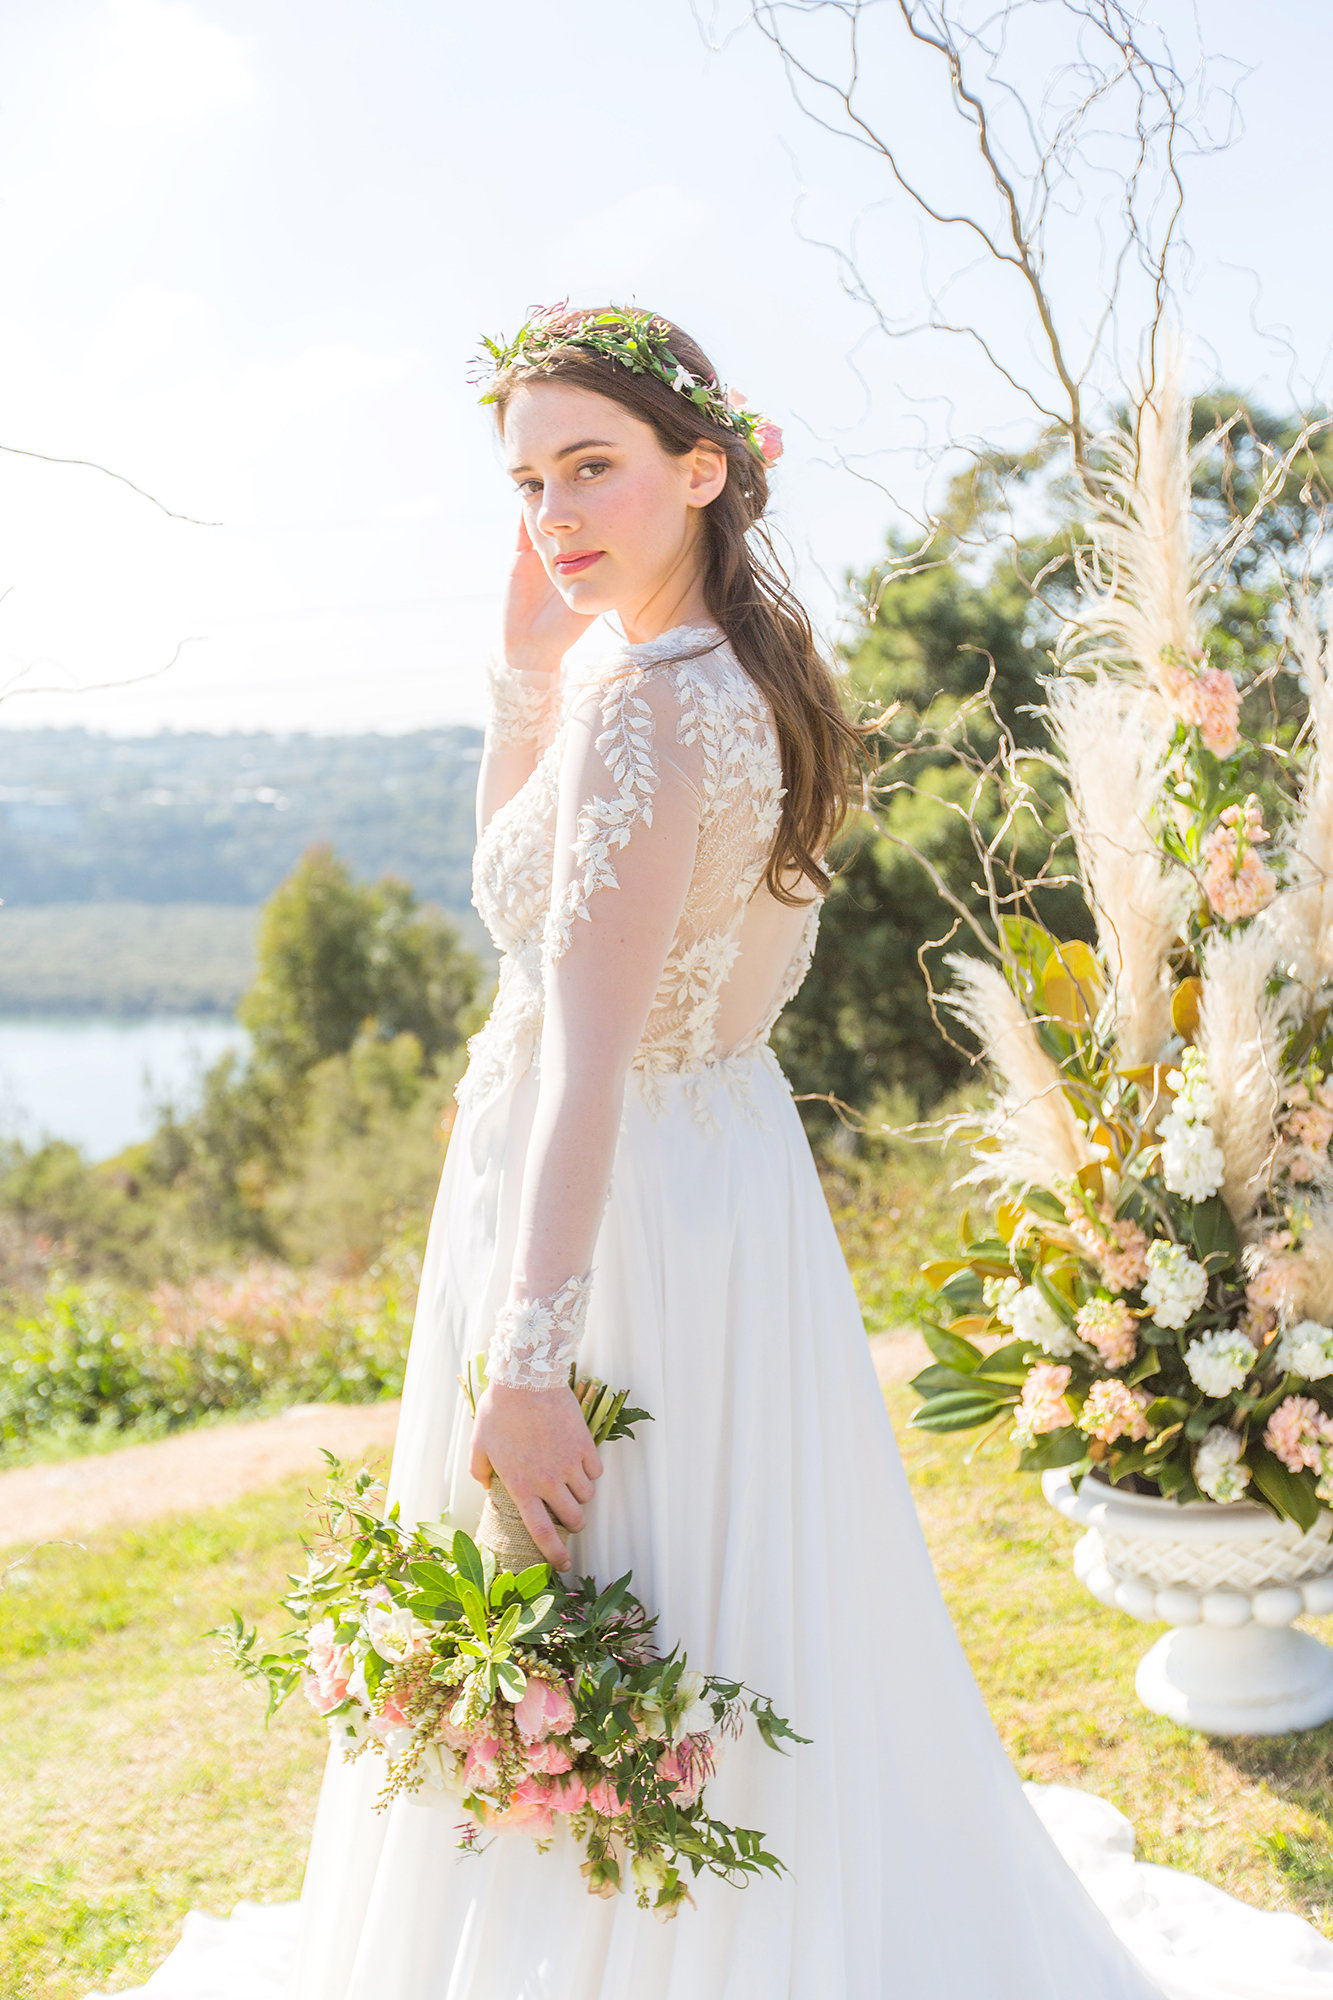 1willow gown tanya anic bridal photography lilelements modern wedding feature blog 3E3A0067.jpg